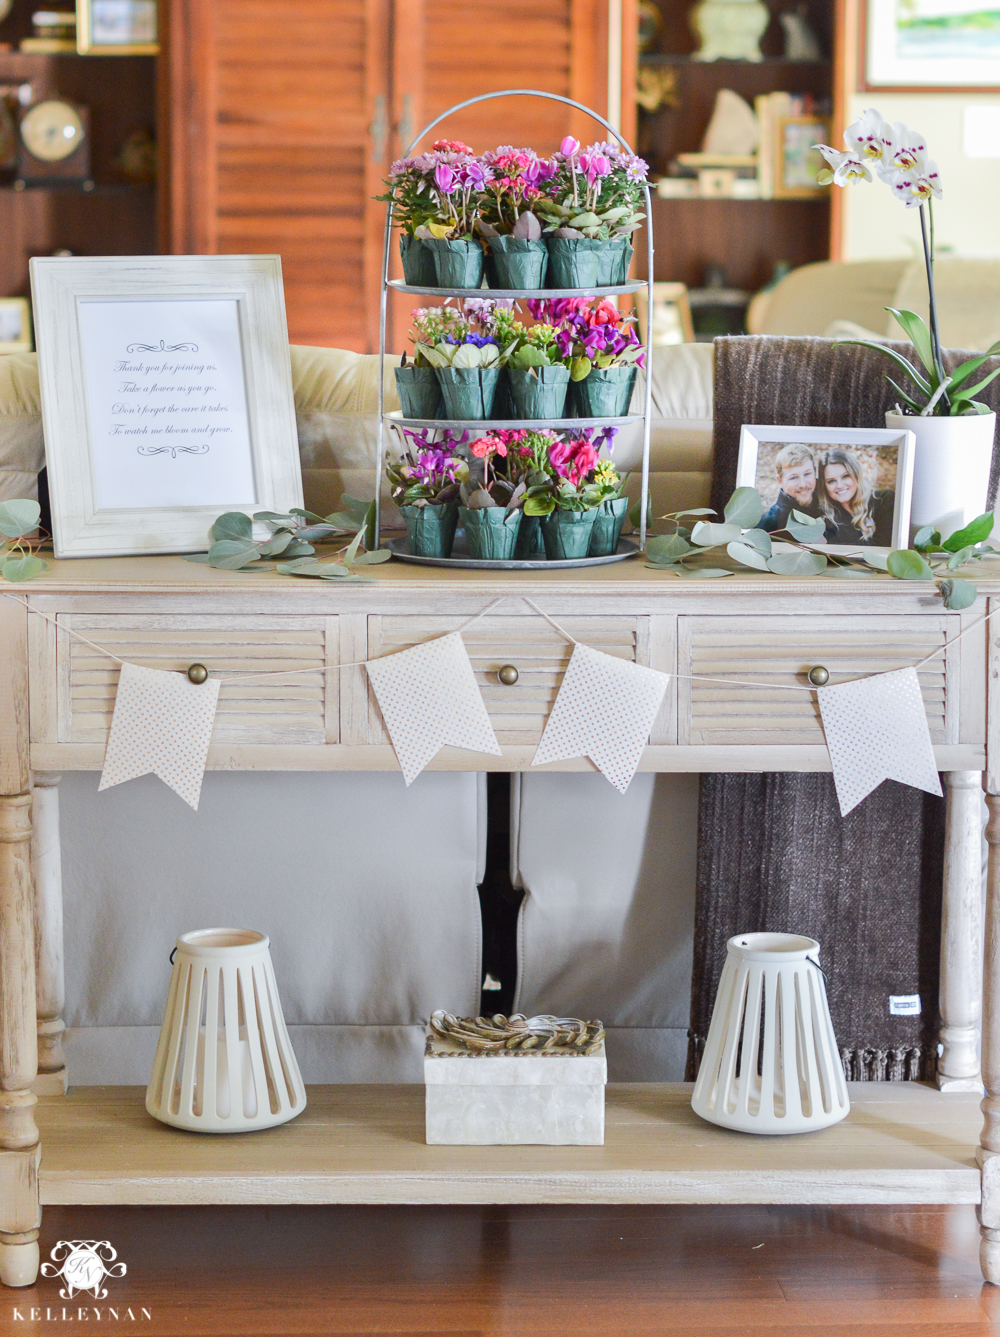 Southern Garden Party Bridal Shower Ideas- decorated guest favor setup